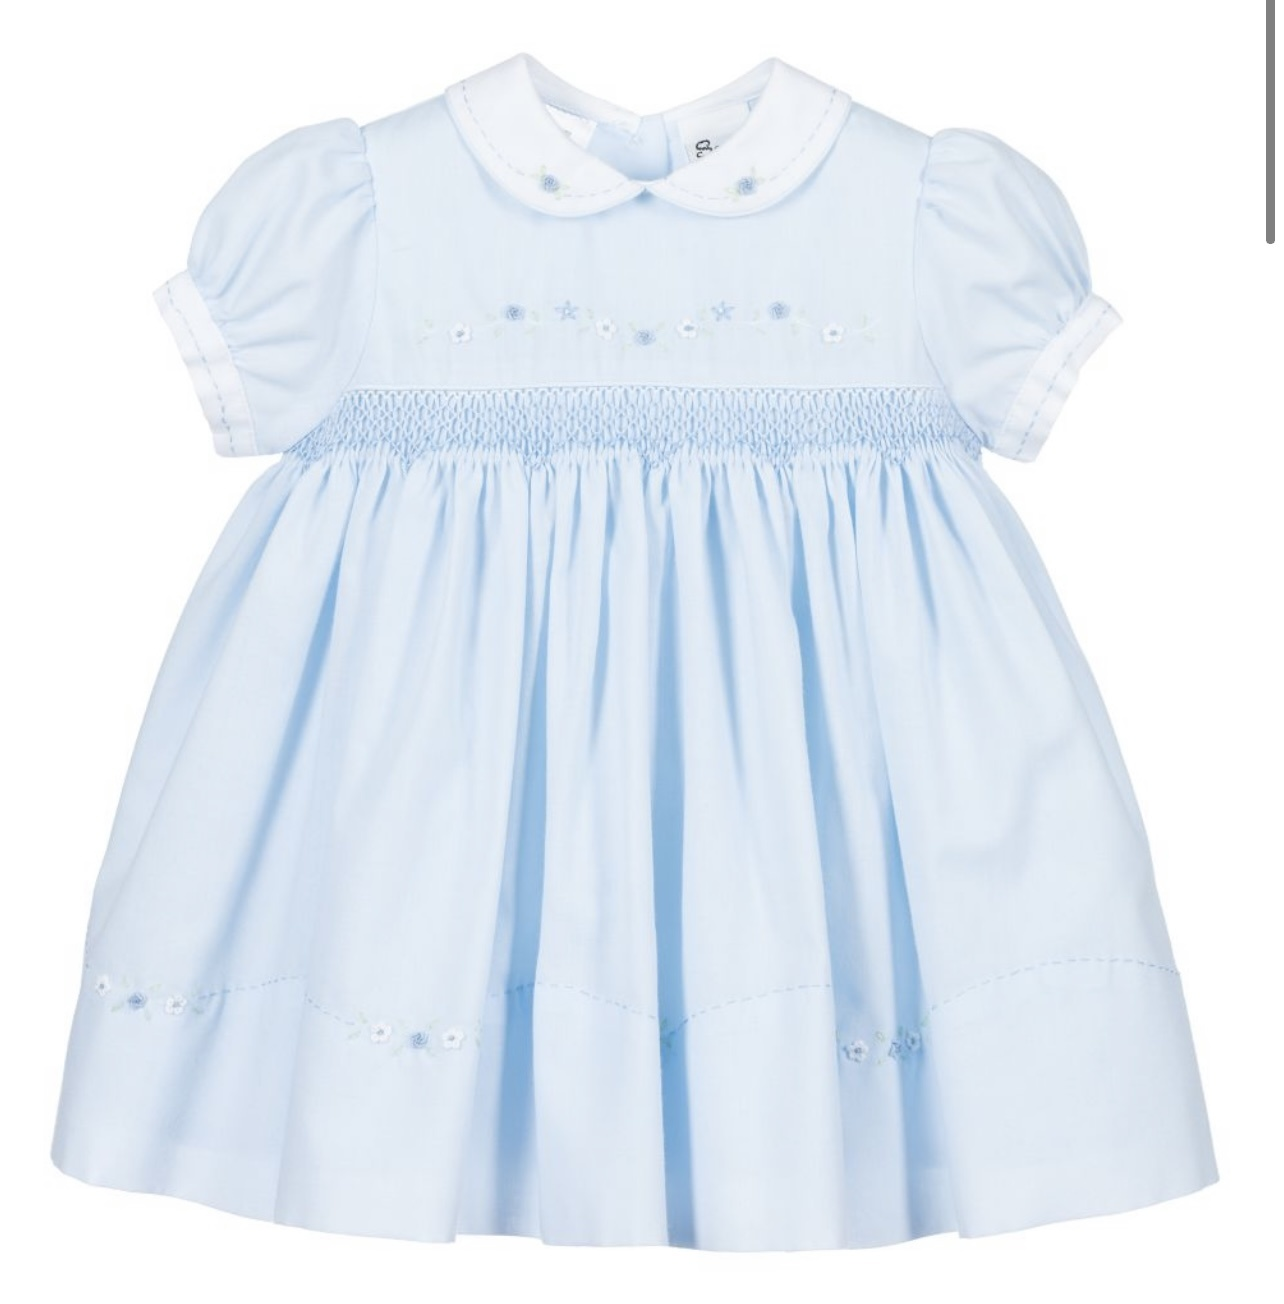 Sarah Louise Sarah Louise - Girls Blue Hand-Smocked Dress 237 S21